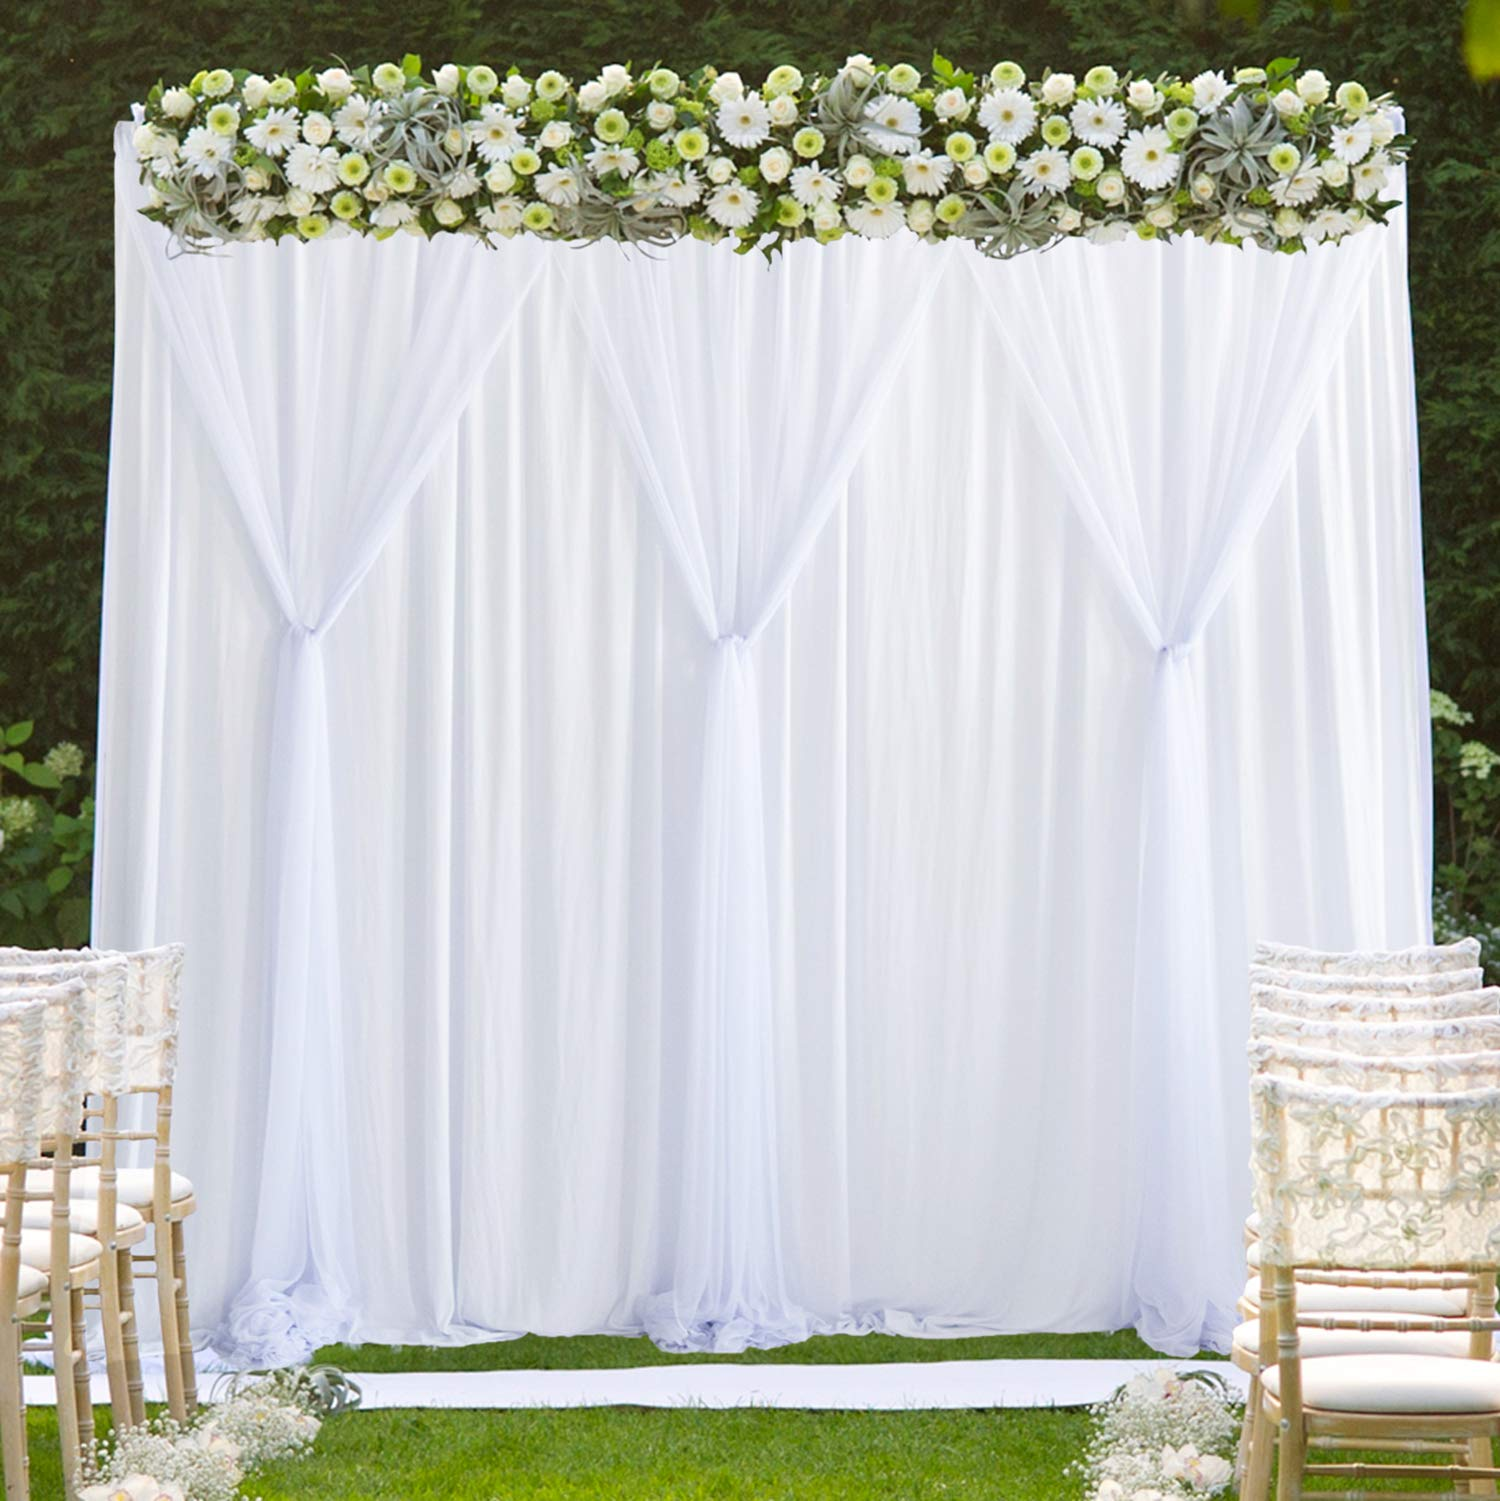 White Tulle Backdrop Curtains Photo Backdrop for Weddings Birthday Parties Baby Shower Photography Drape Backdrop Stage Curtain 10 ft X 7 ft